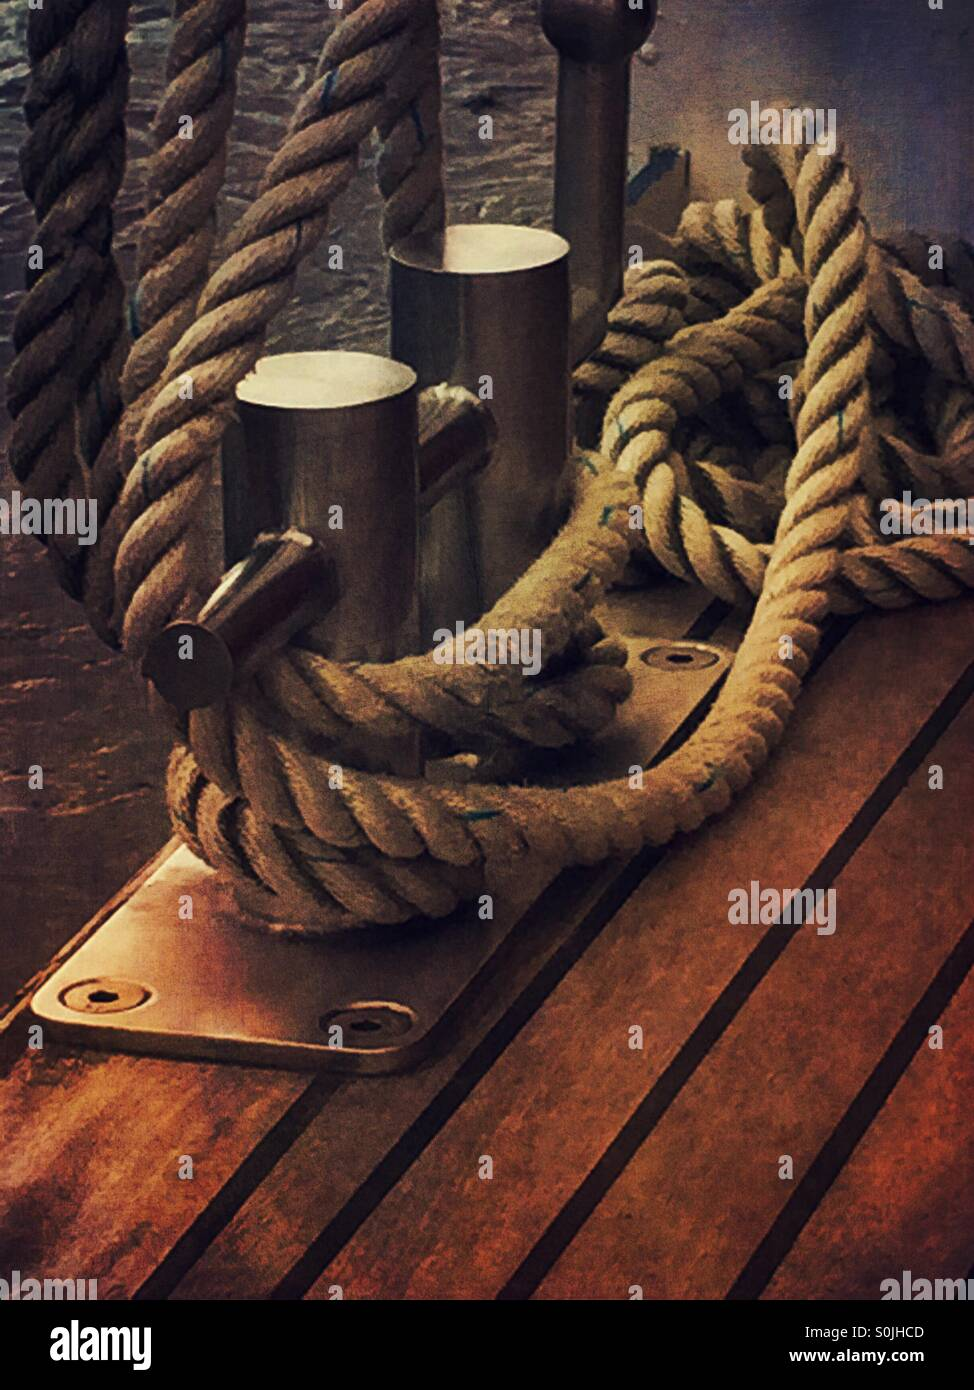 Cleats and rope on the wooden deck - Stock Image